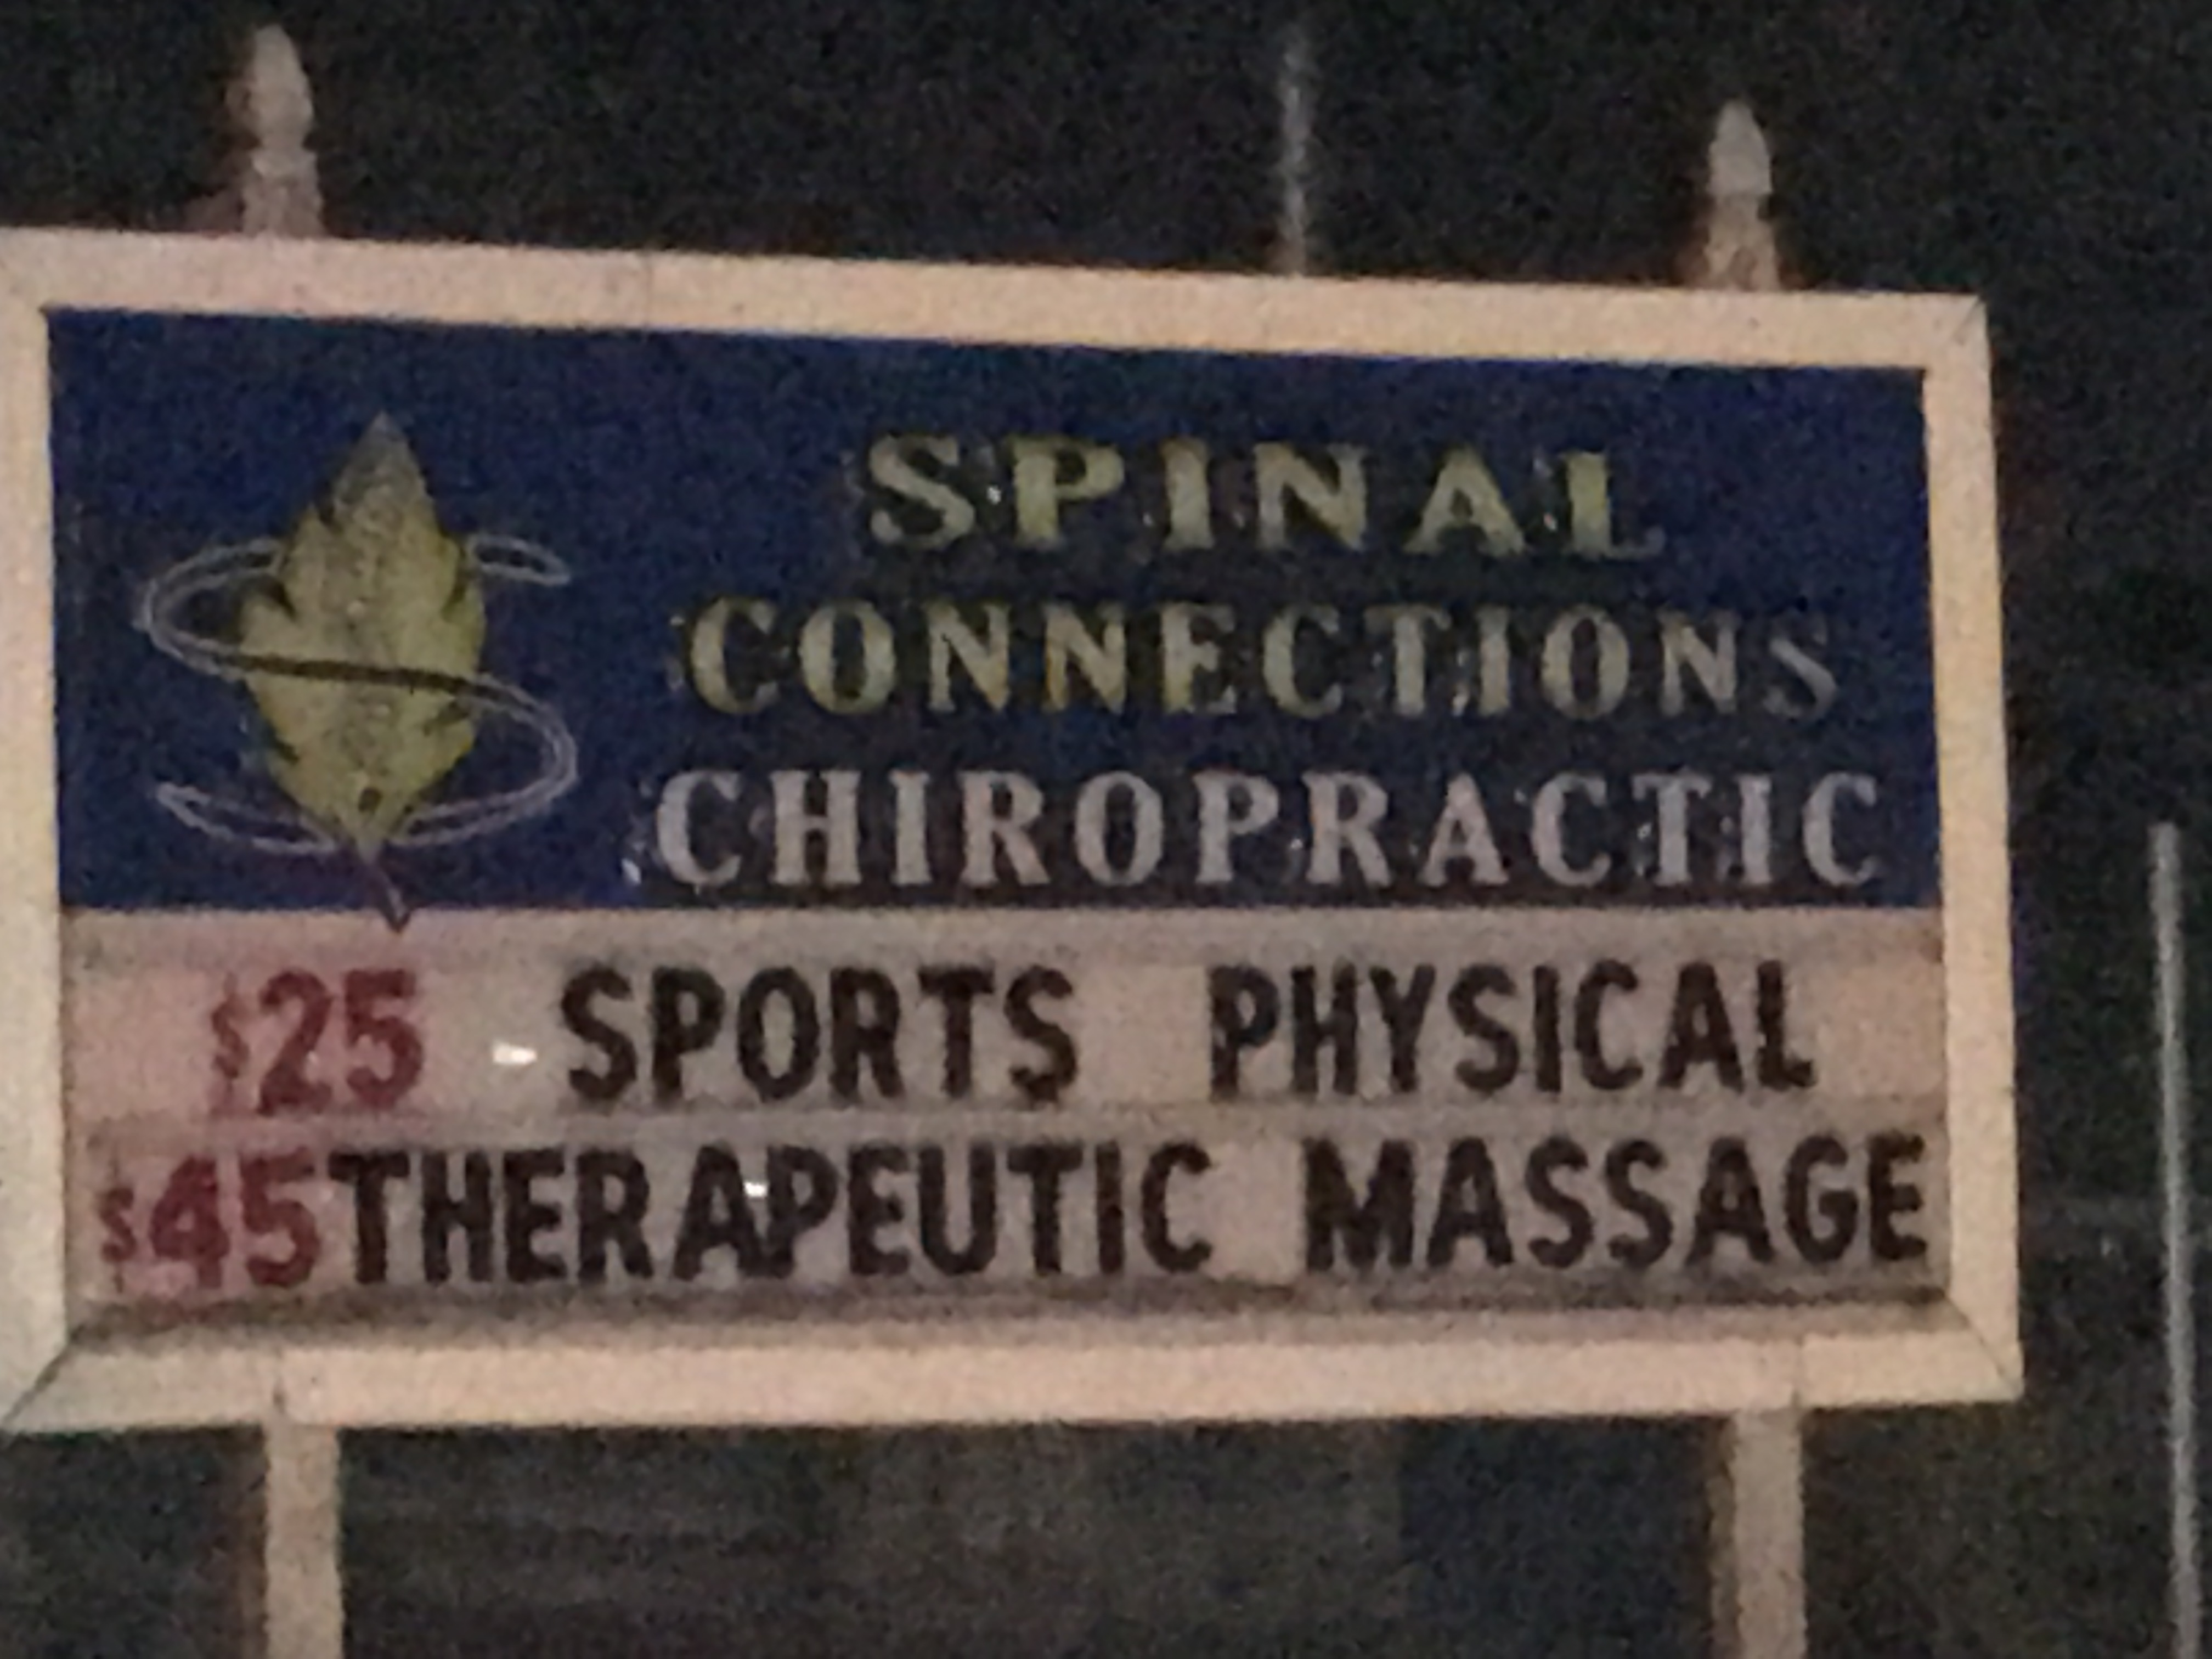 Spinal Connections of Tampa Bay